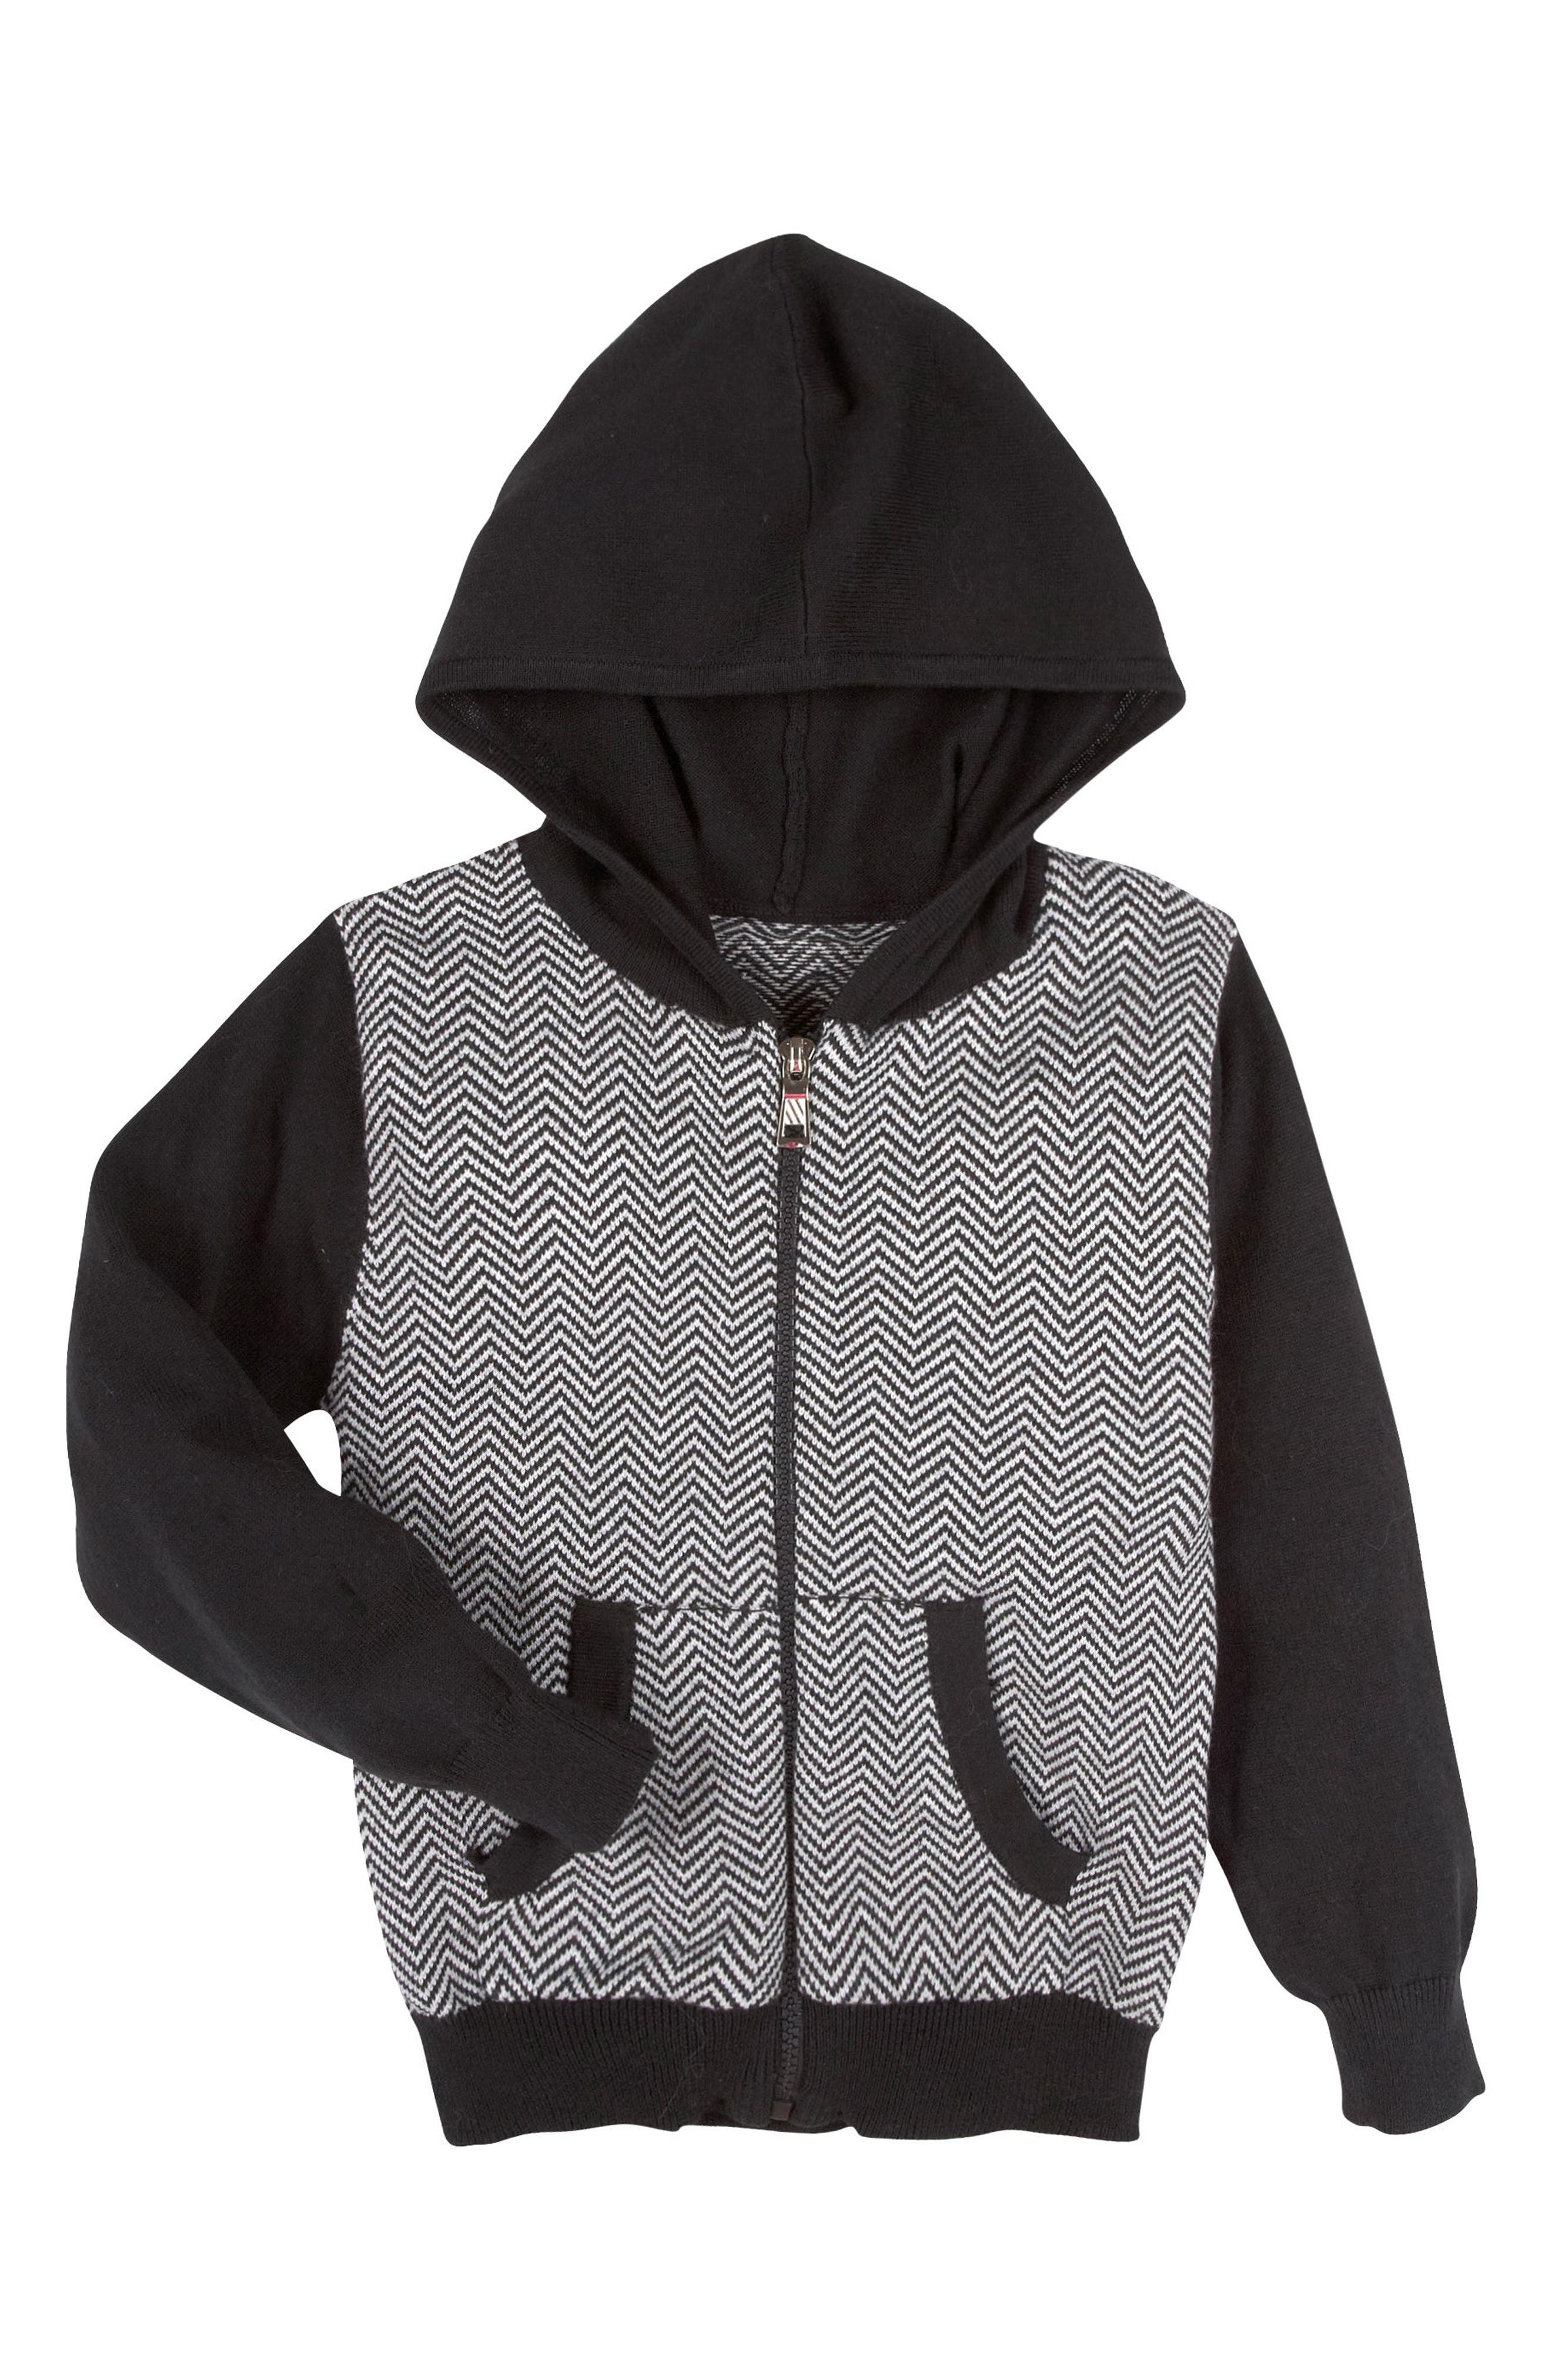 Herringbone Hoodie,                         Main,                         color, Black